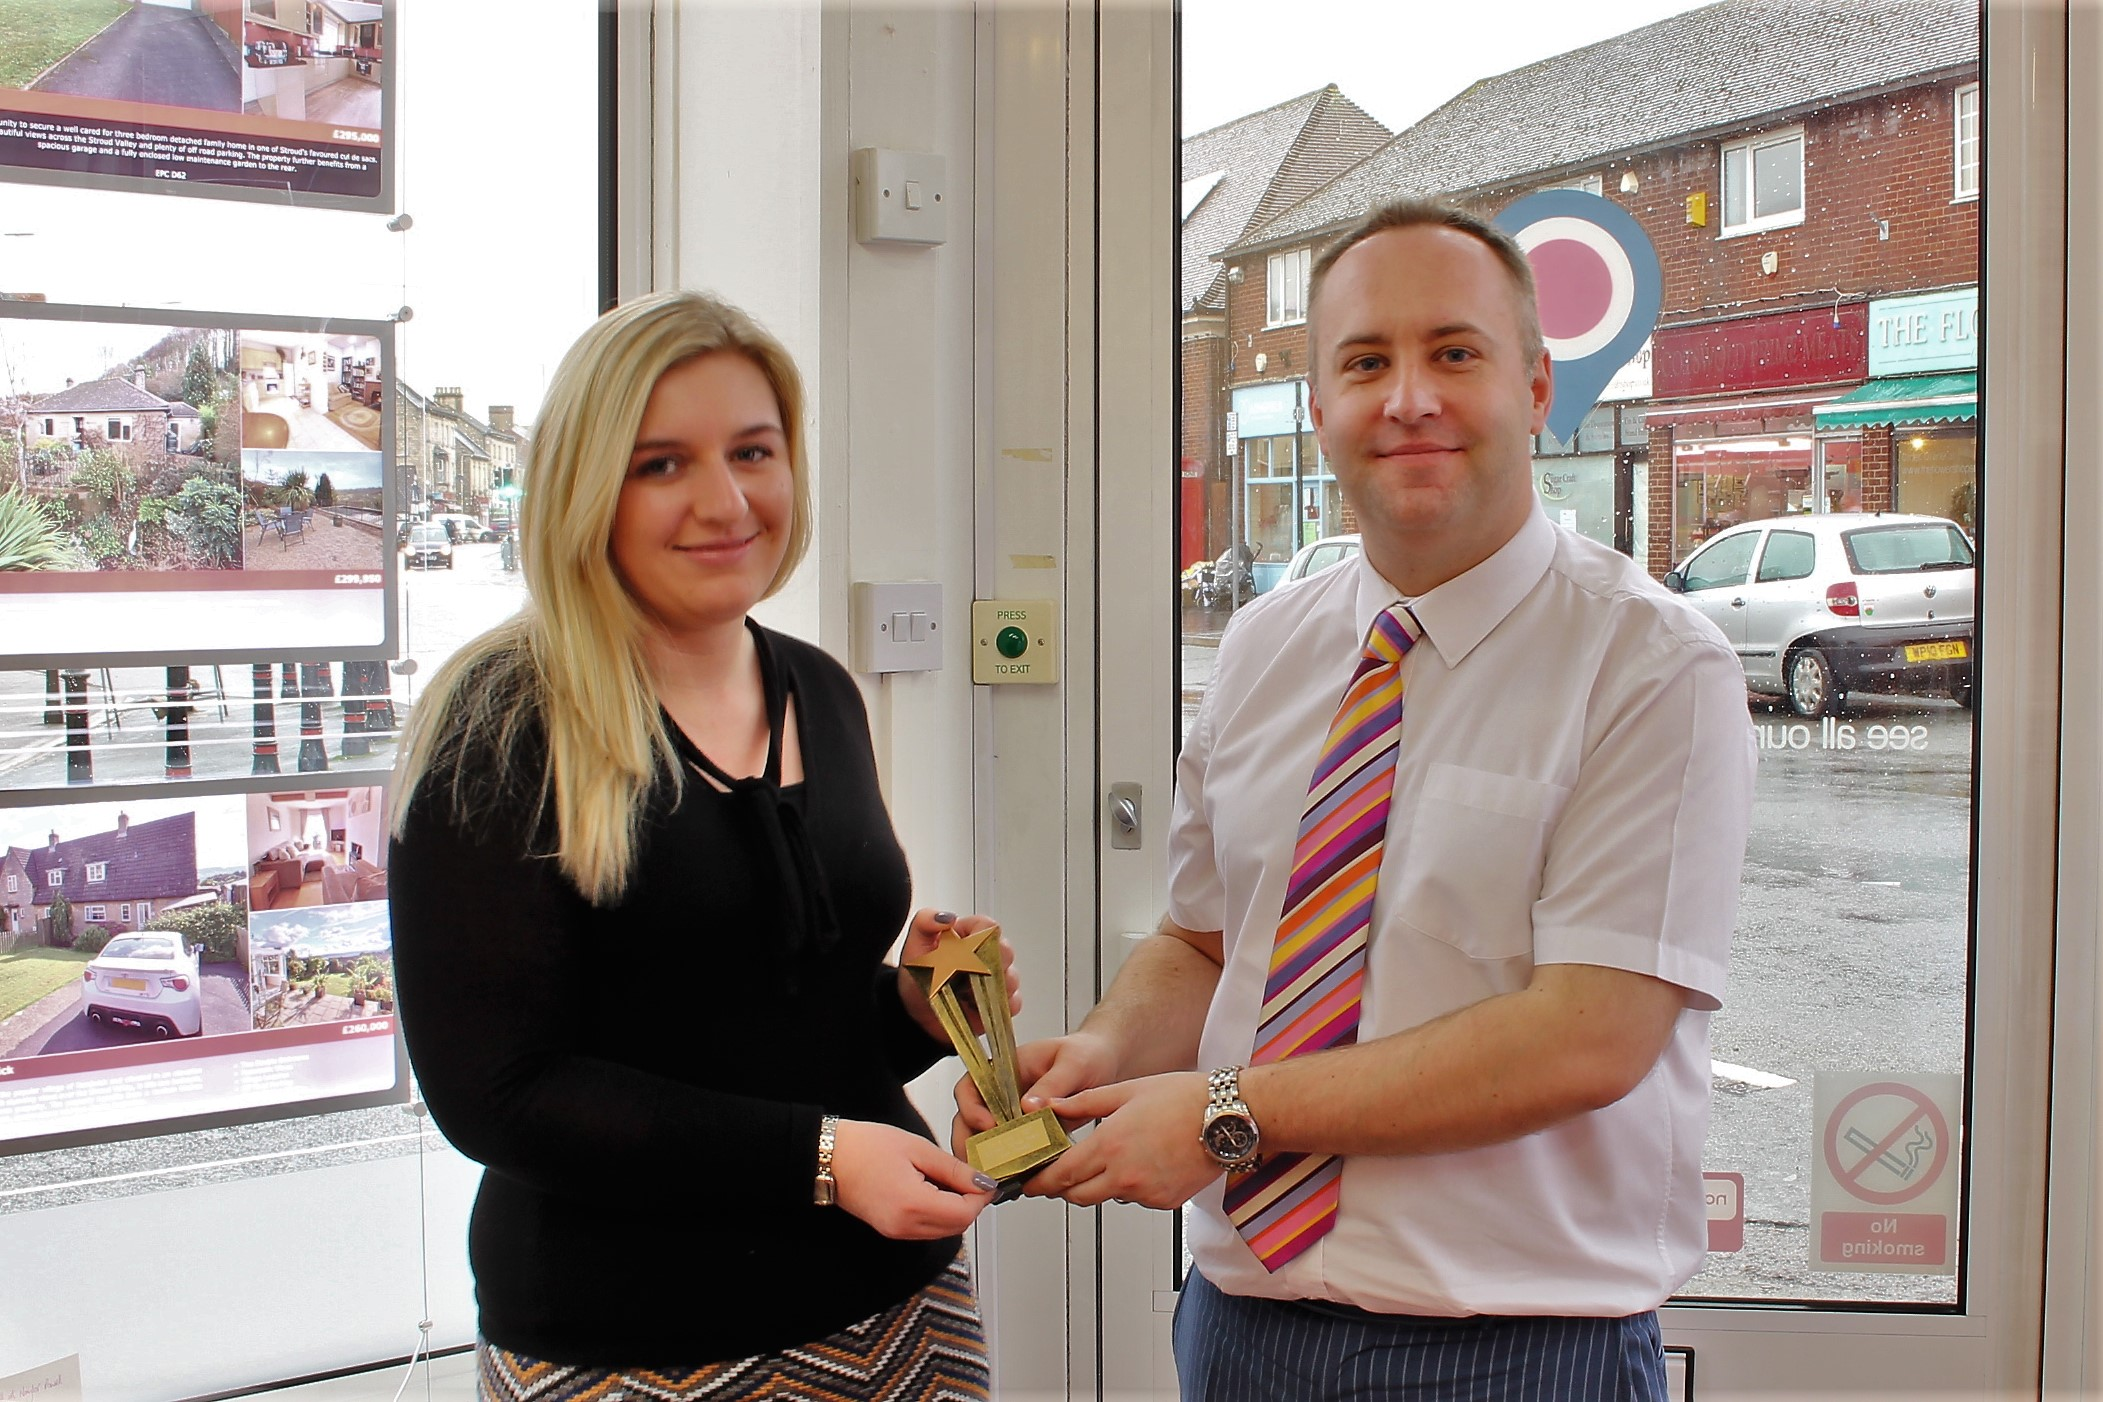 Stonehouse win customer service awards